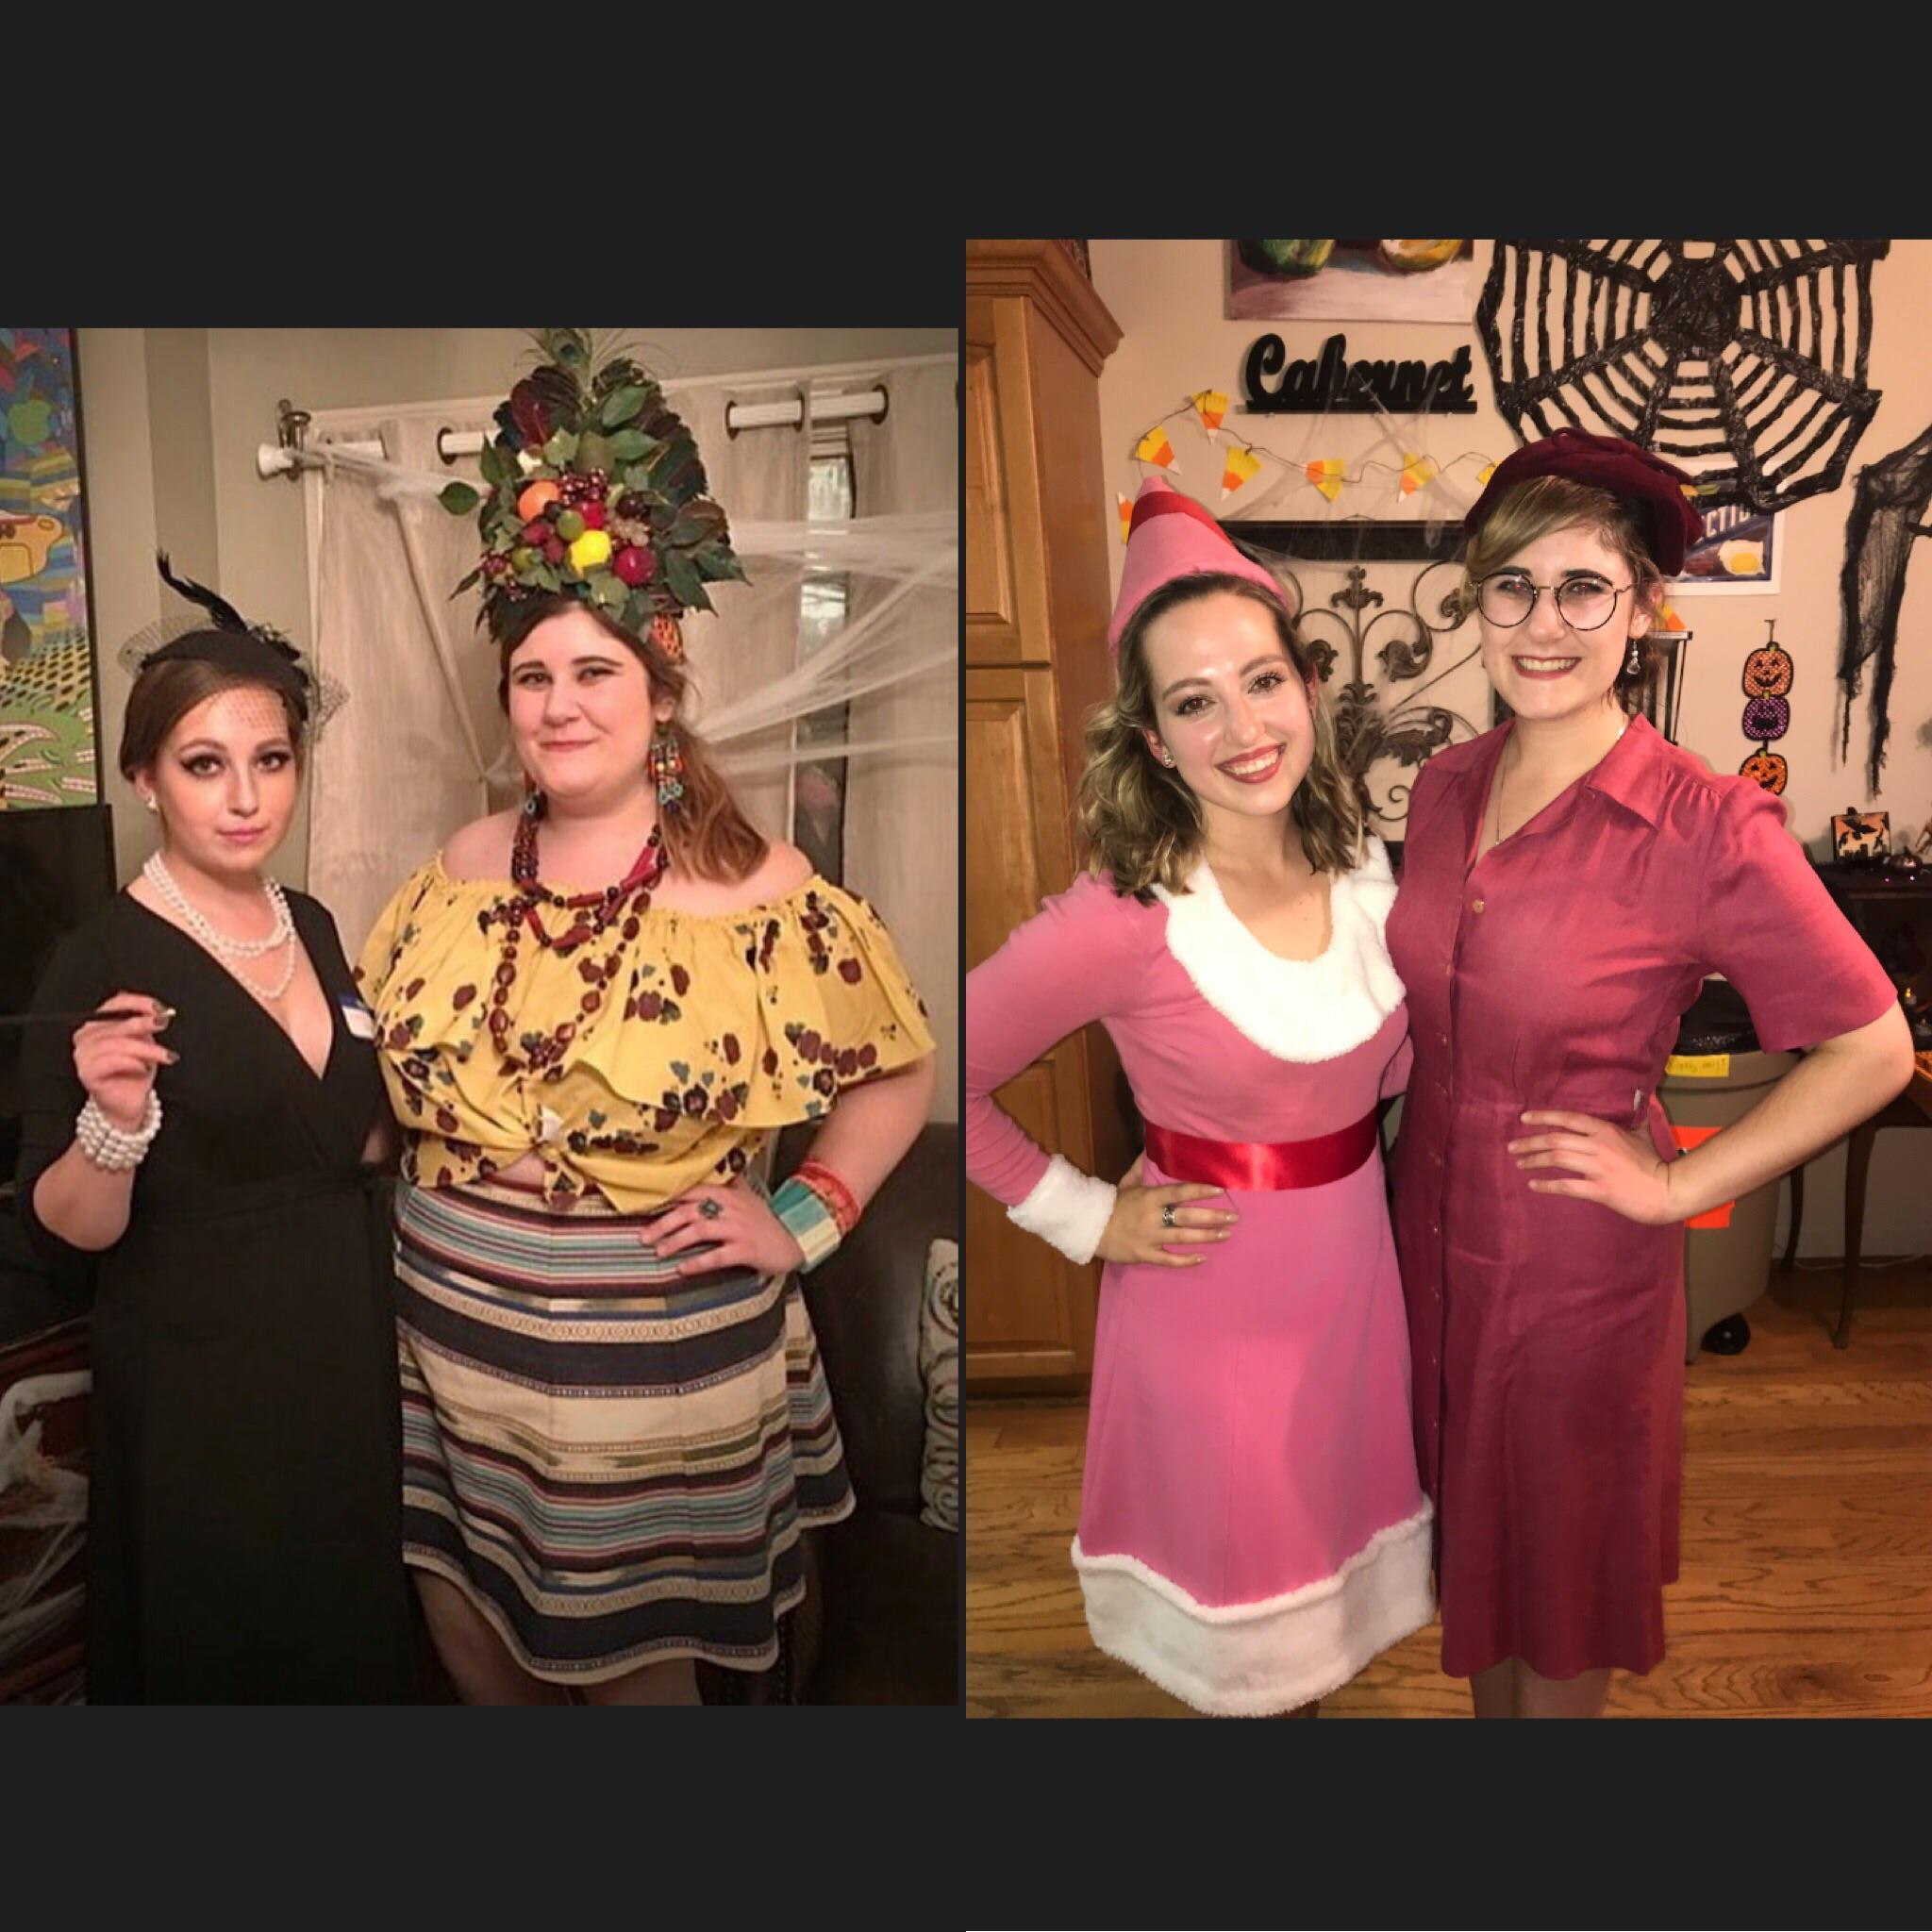 5 foot 6 Female Before and After 100 lbs Fat Loss 255 lbs to 155 lbs